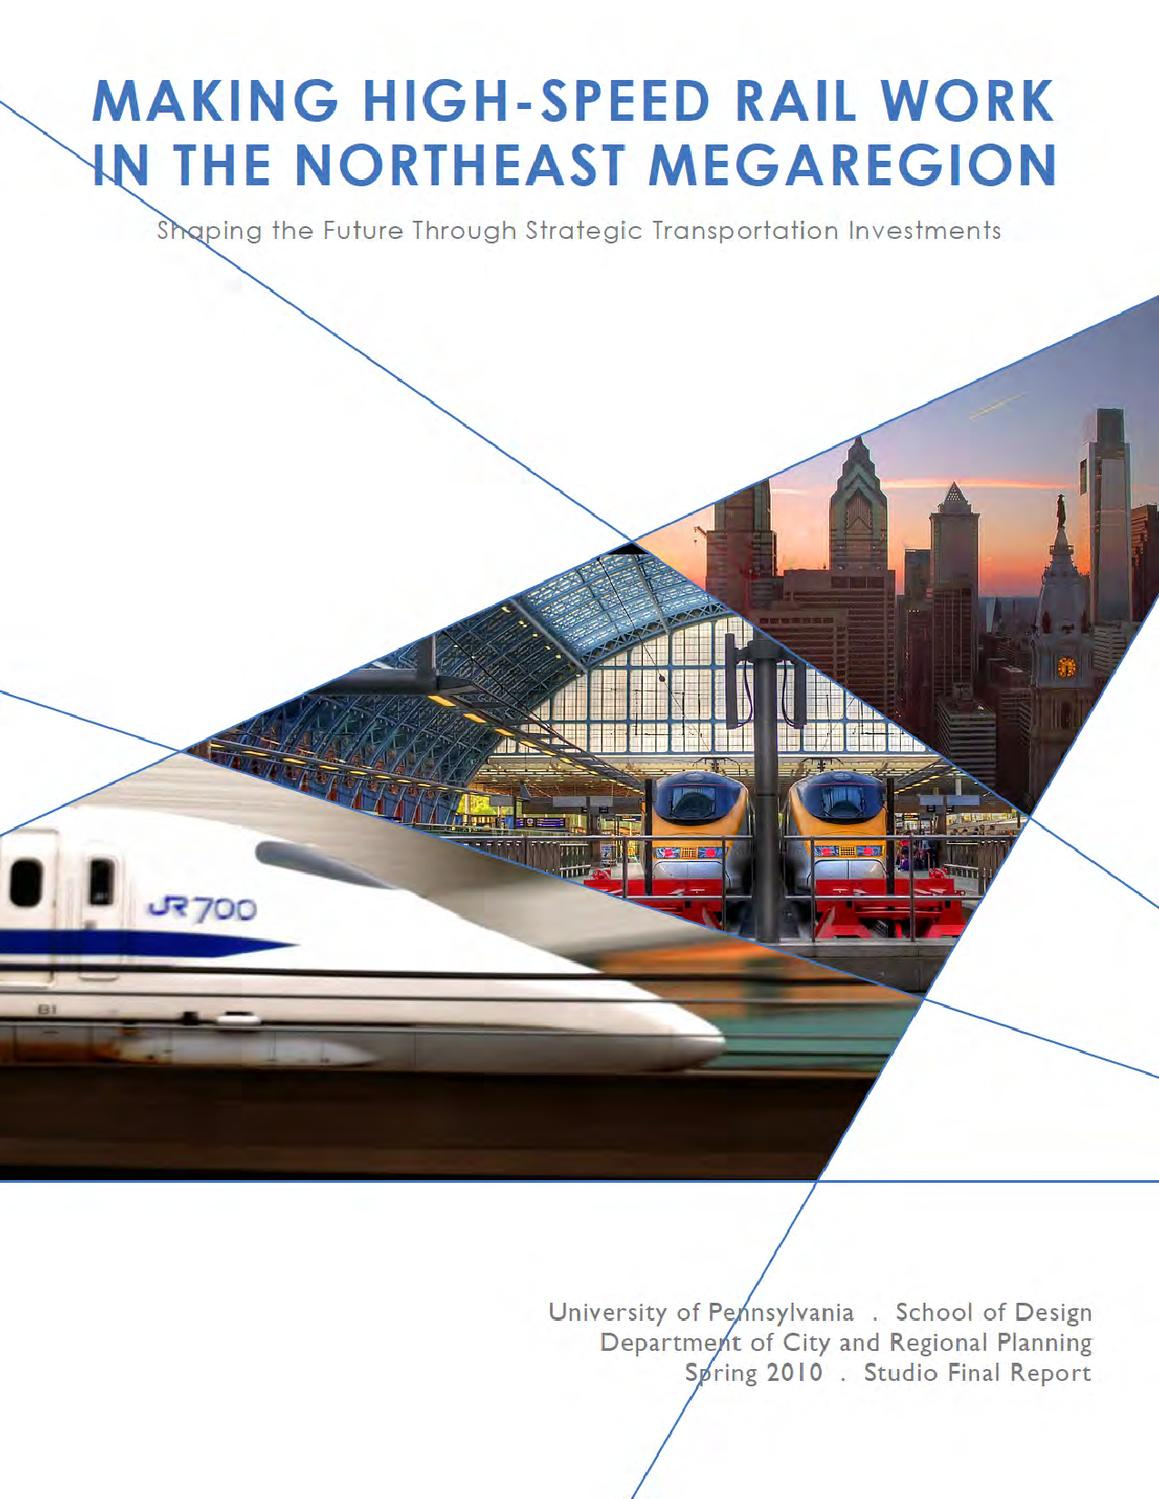 Making High-Speed Rail Work in the Northeast Megaregion by